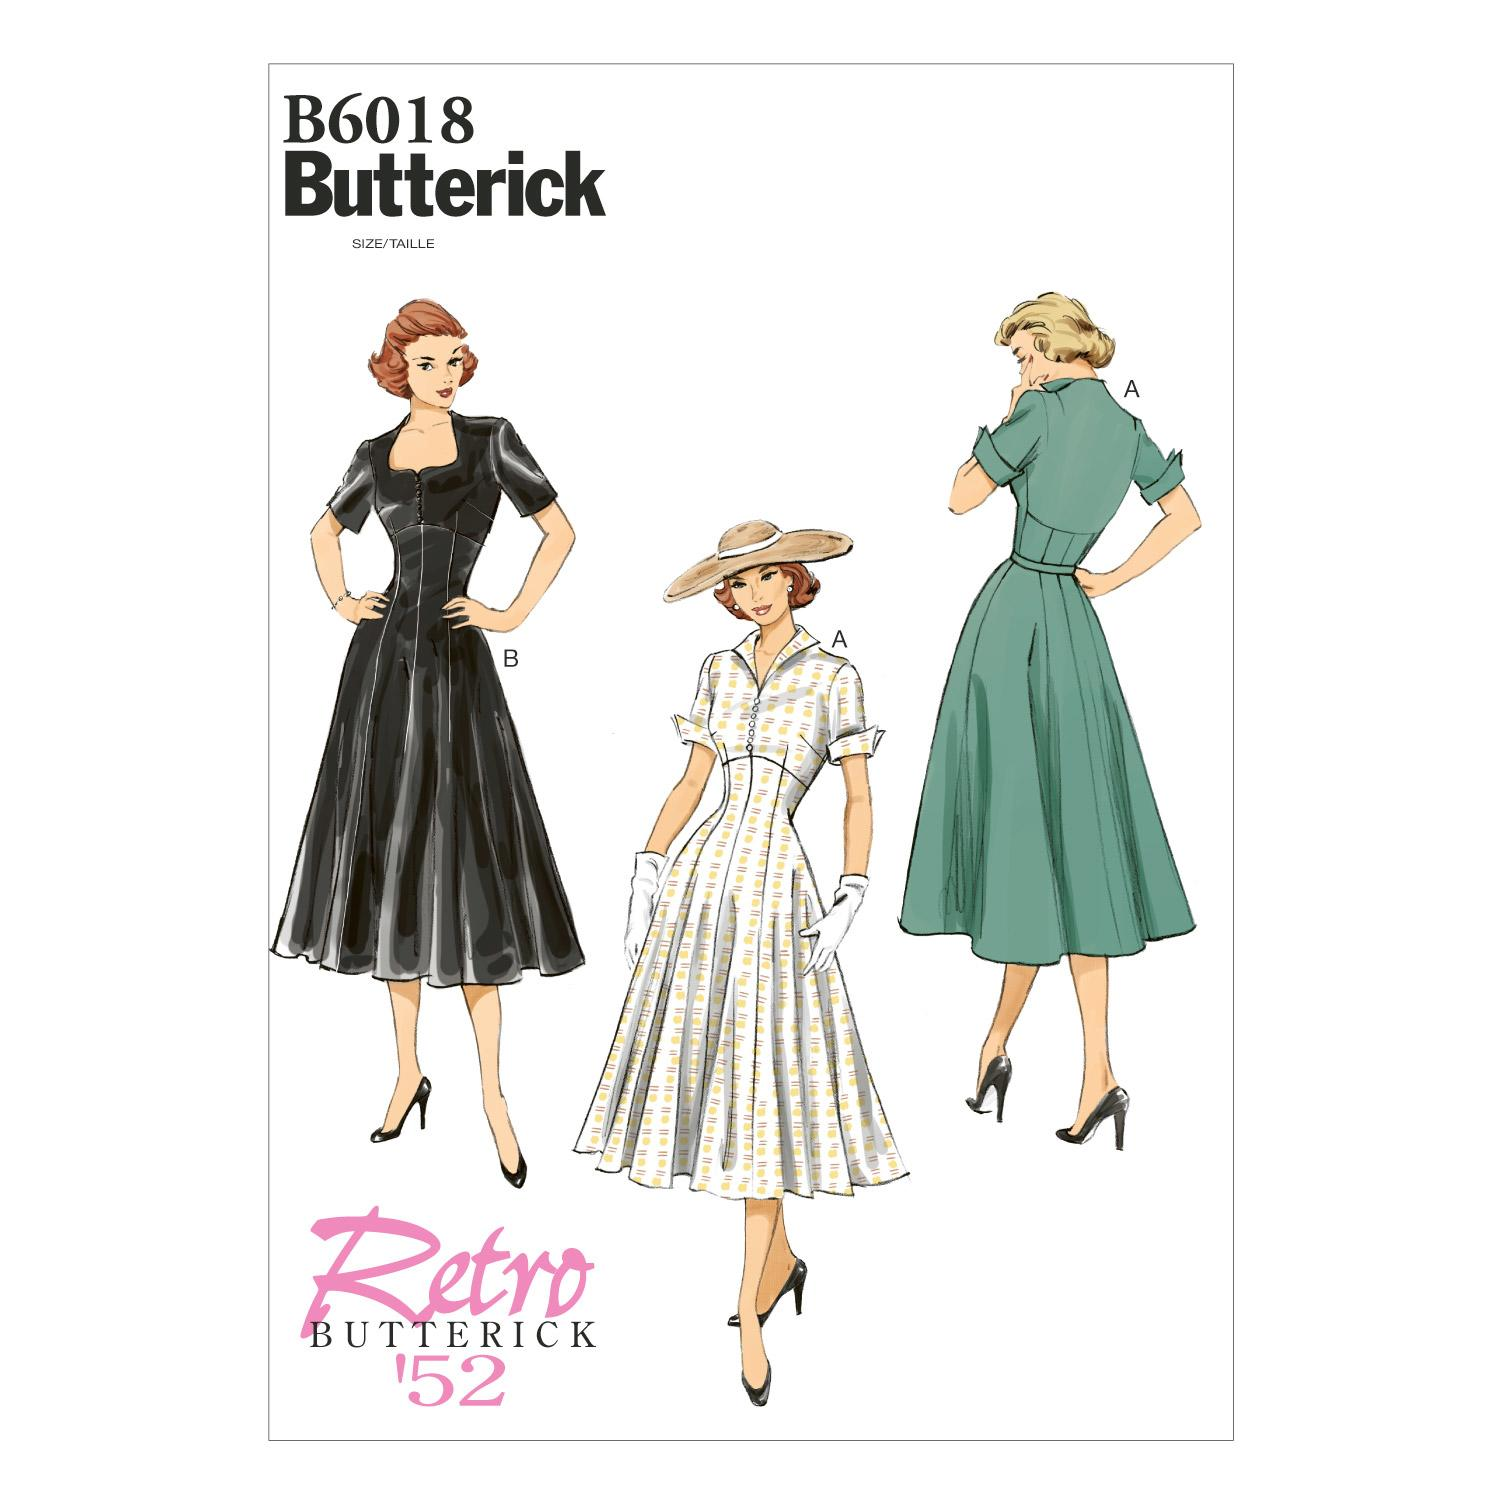 Butterick B6018 Misses' Dress